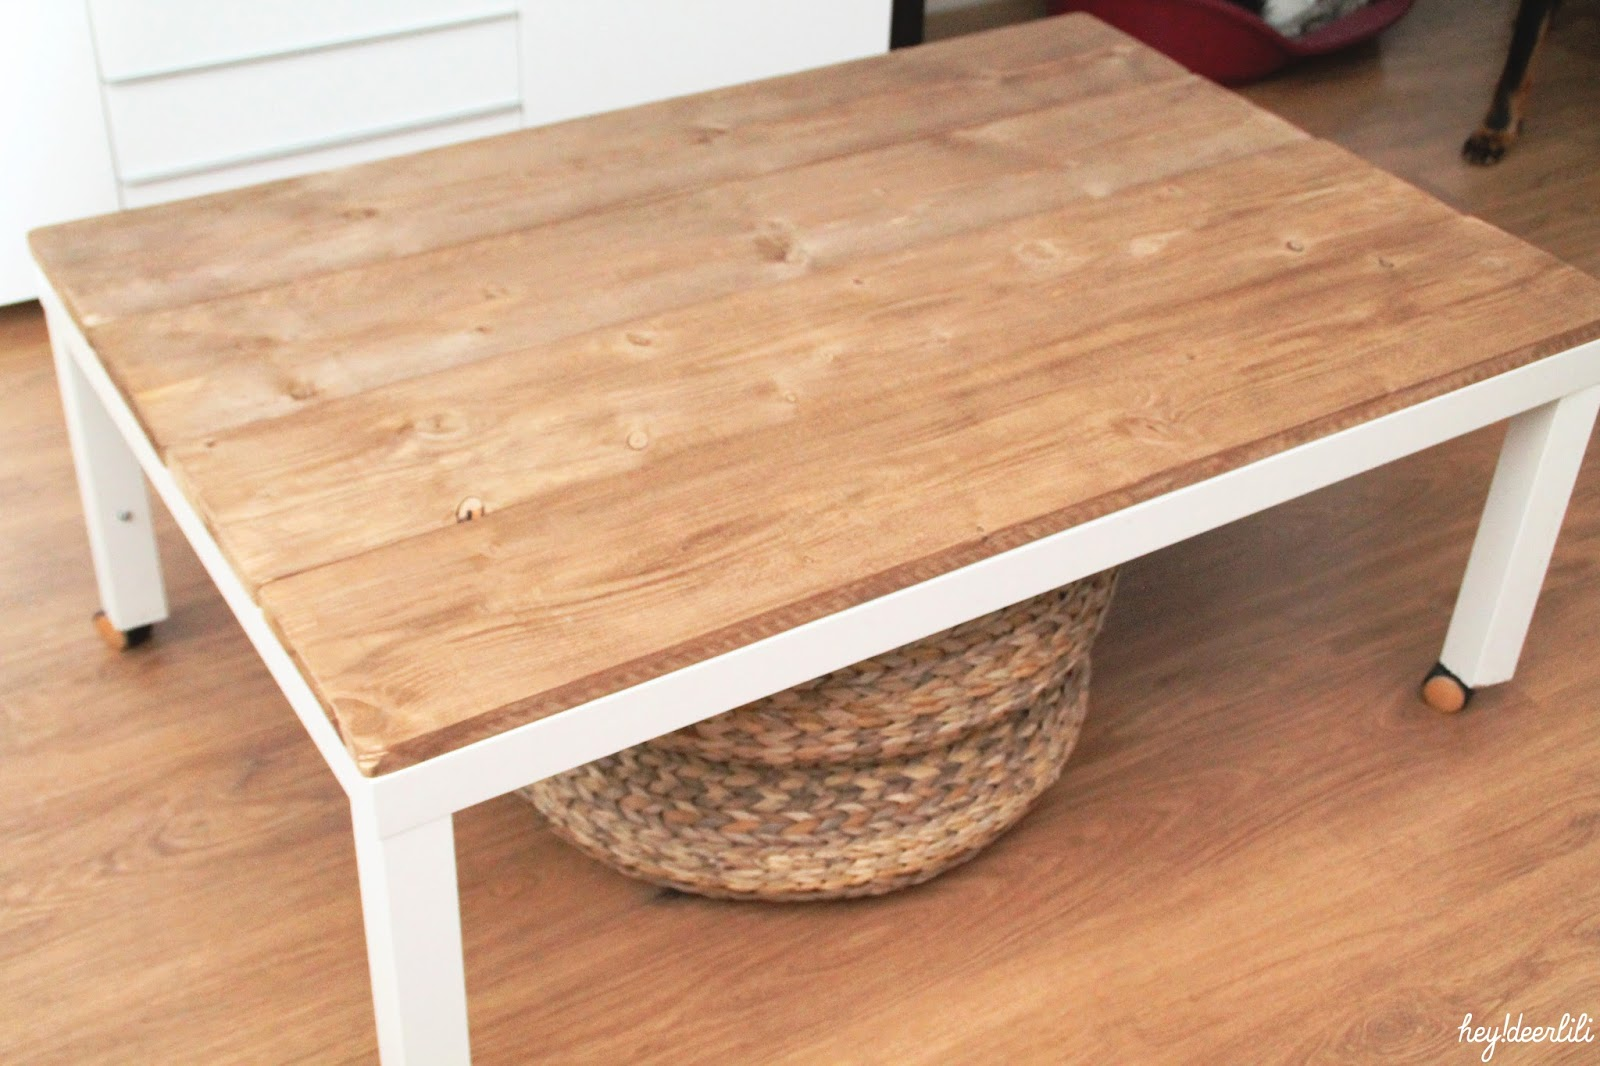 Customiser une table basse ikea - Customiser une table basse en bois ...